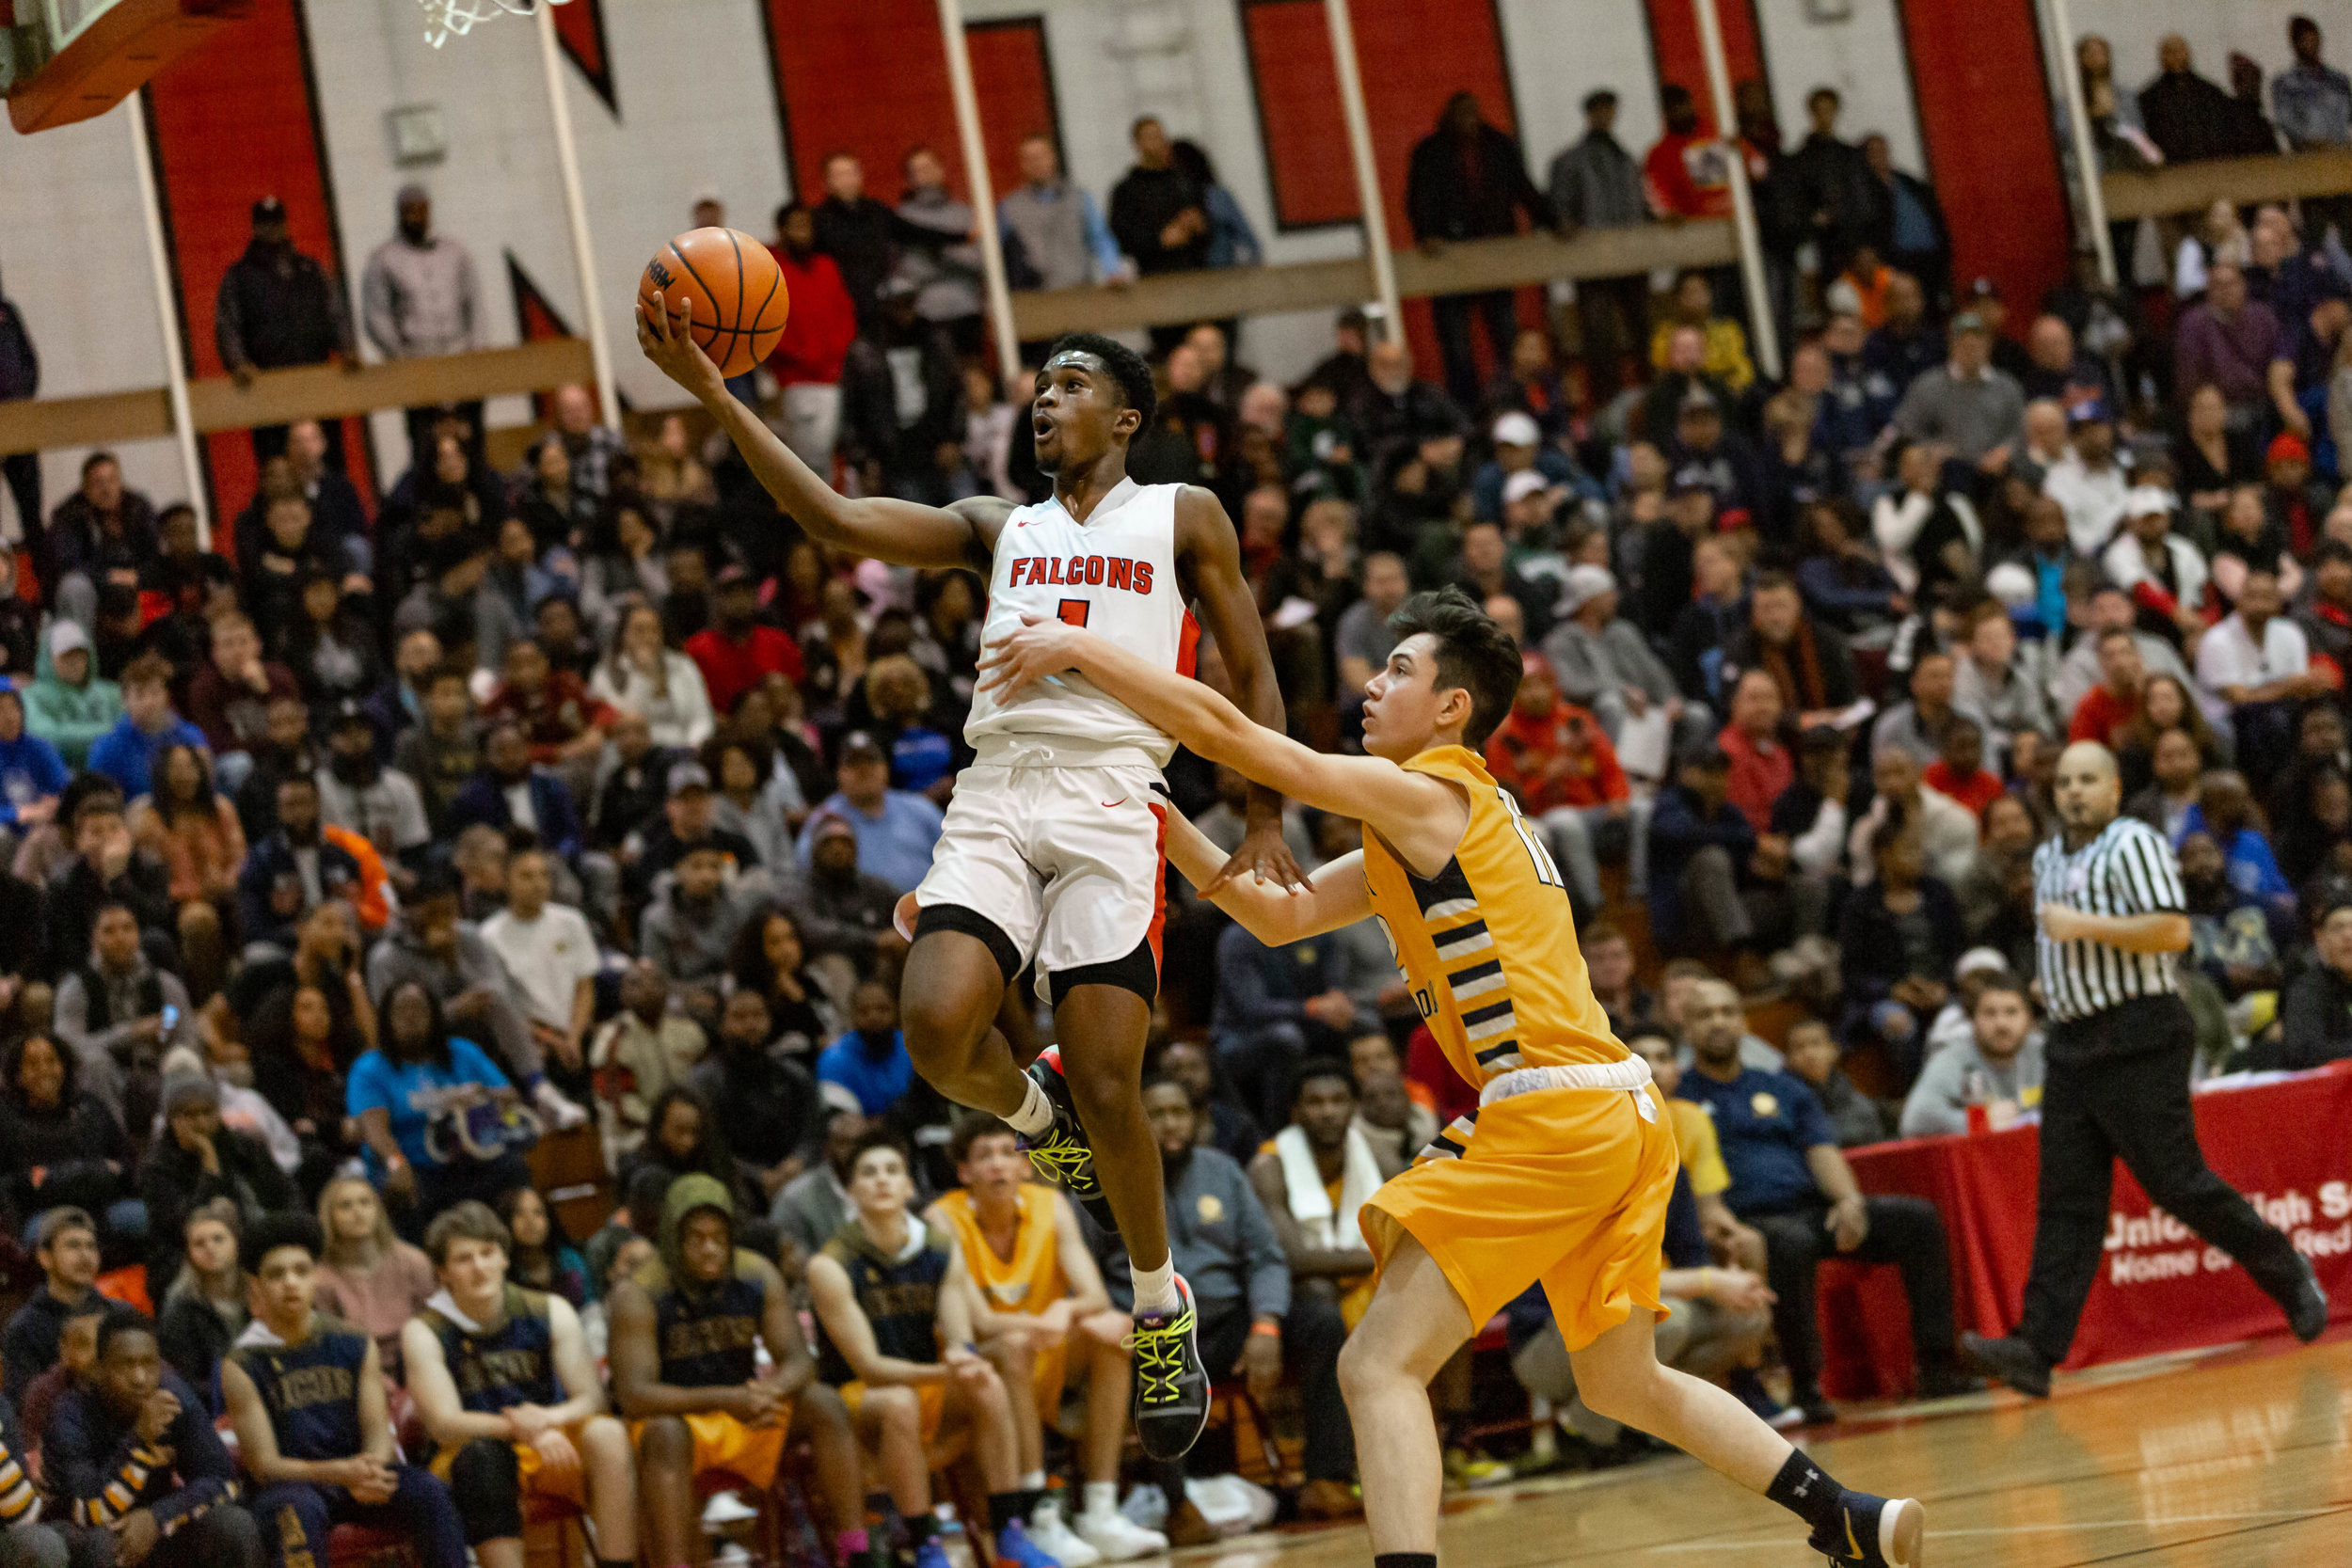 East Kentwood vs Detroit Country - Click to see images.